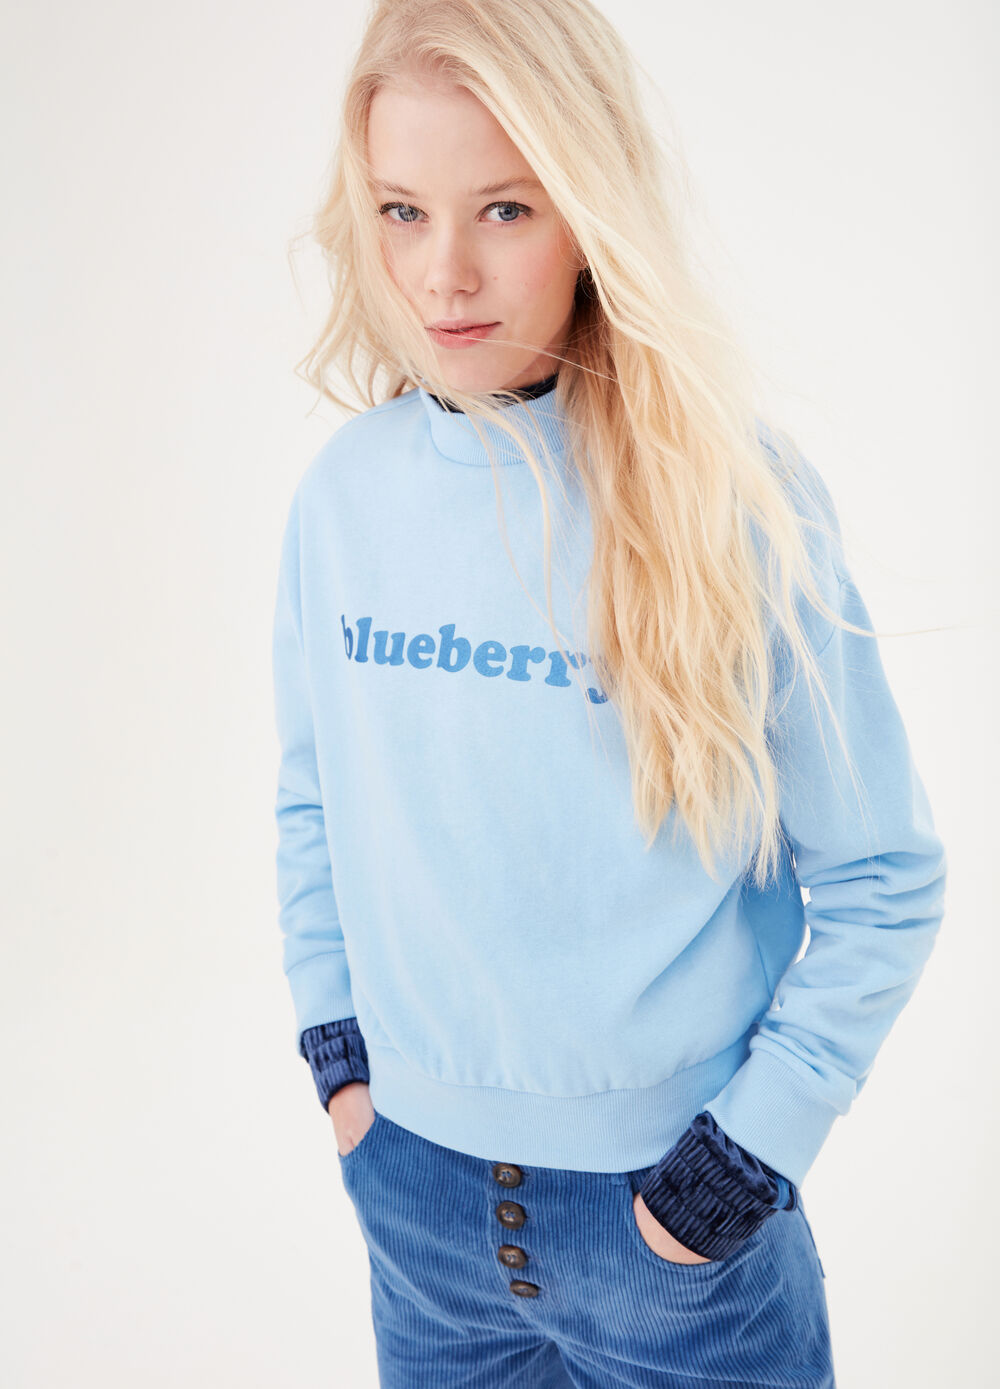 Sweatshirt with matching lettering print